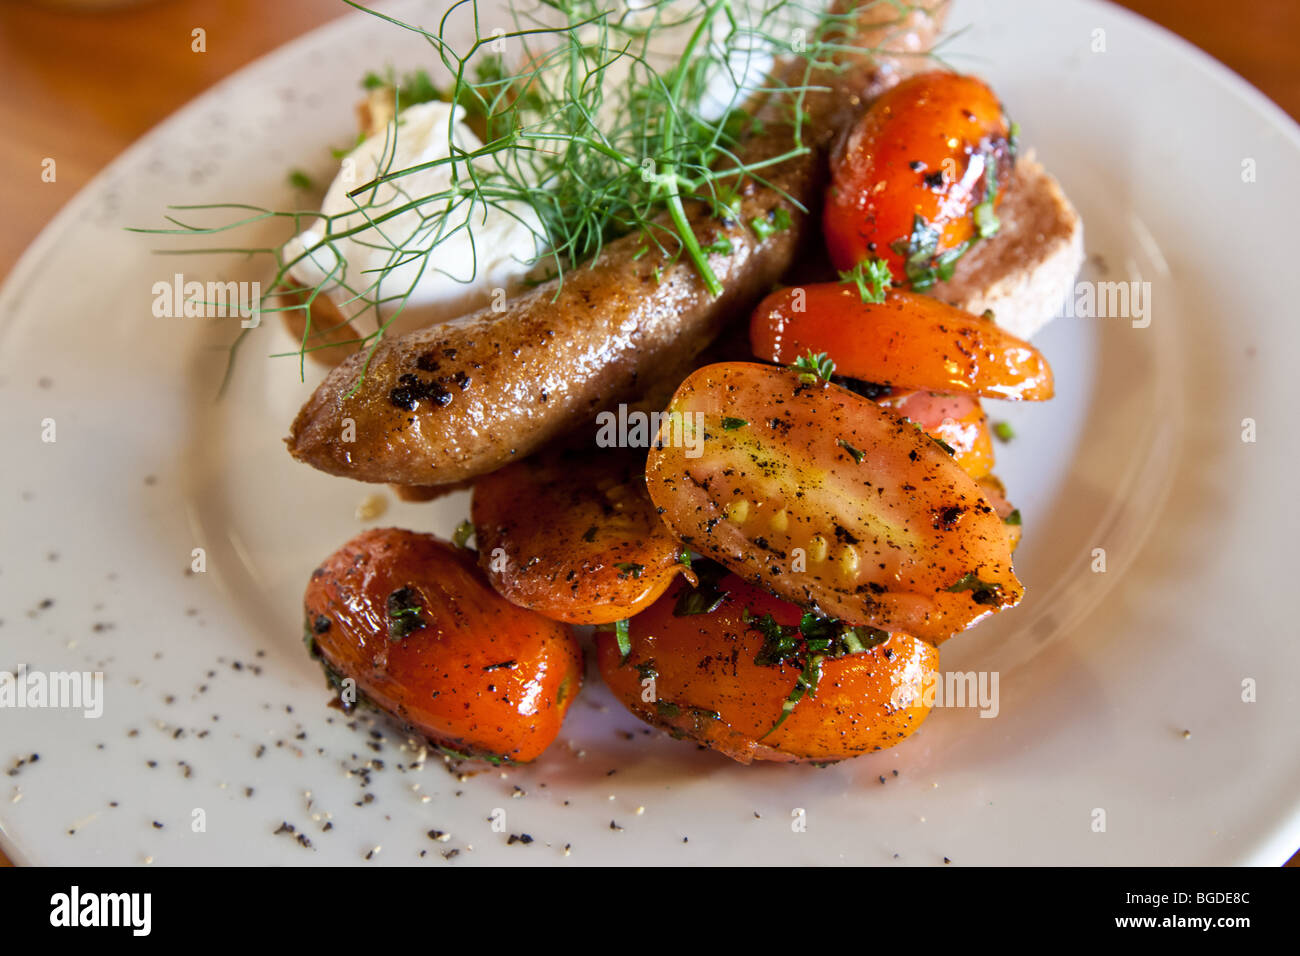 Realism photo of fried breakfast in a cafe, Australia Stock Photo